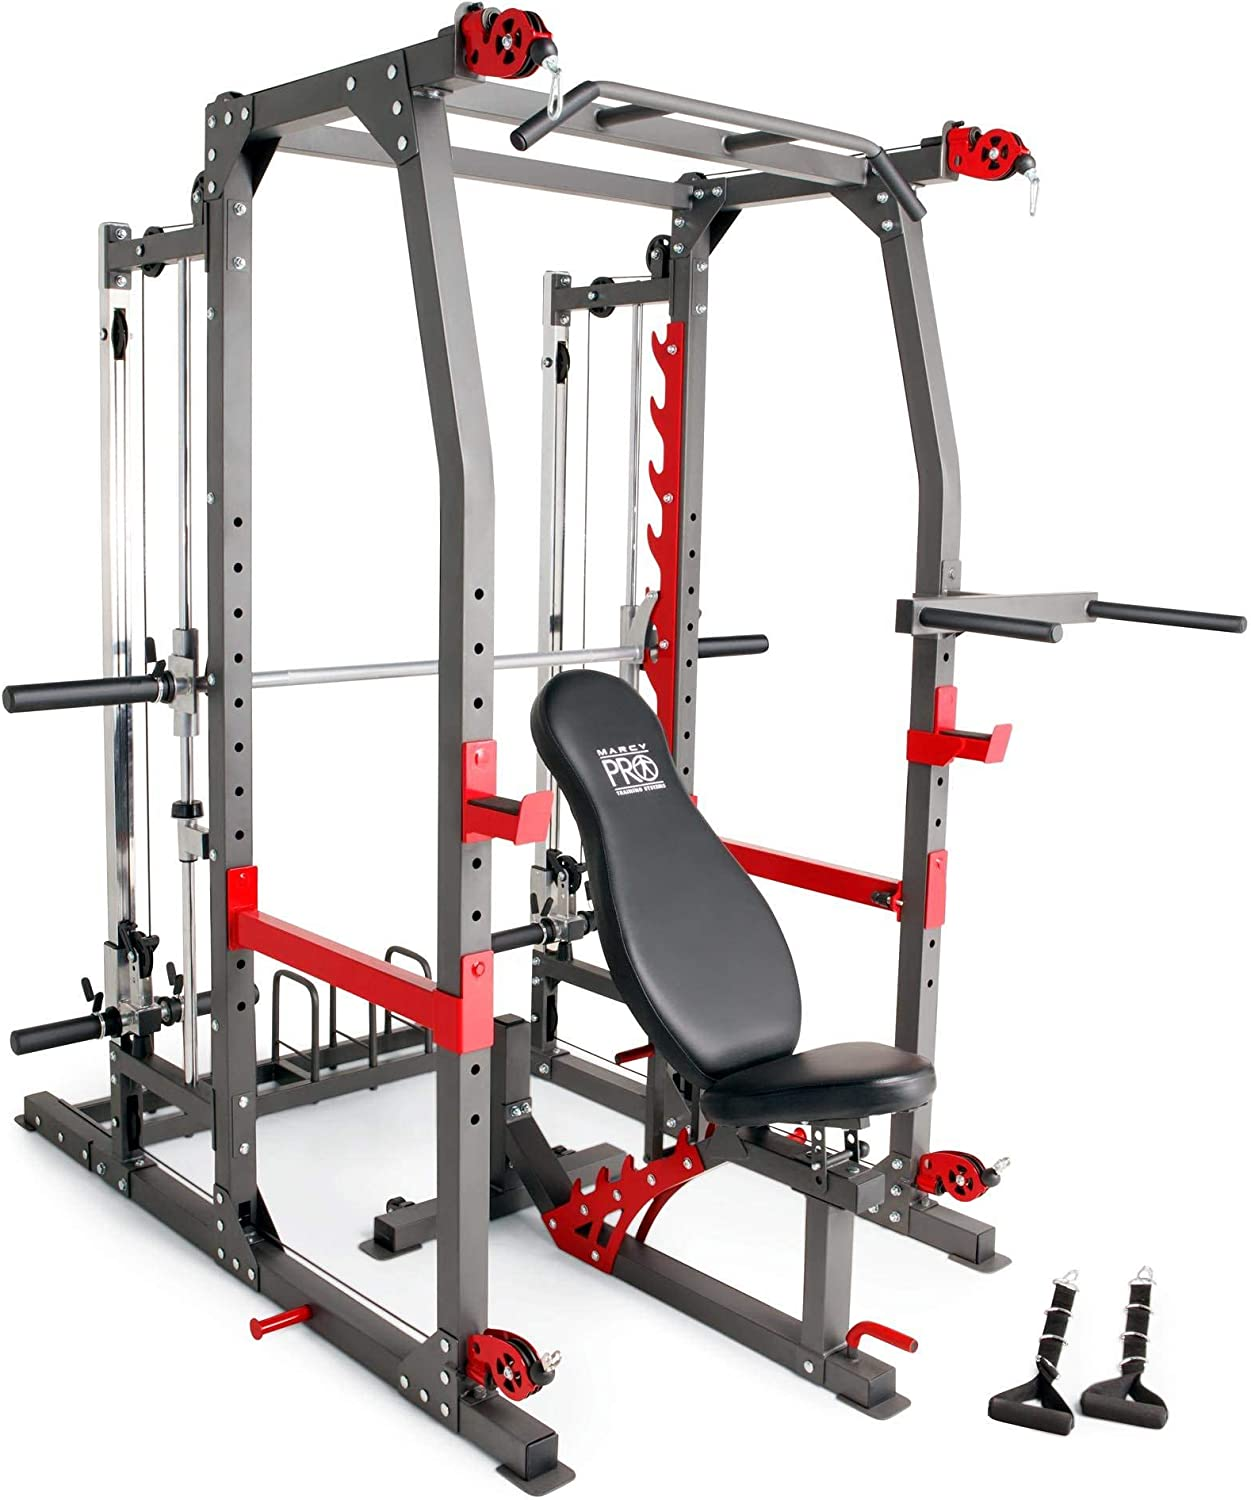 Marcy Pro Smith Machine Weight Bench Home Gym with Total Body Workout Training System